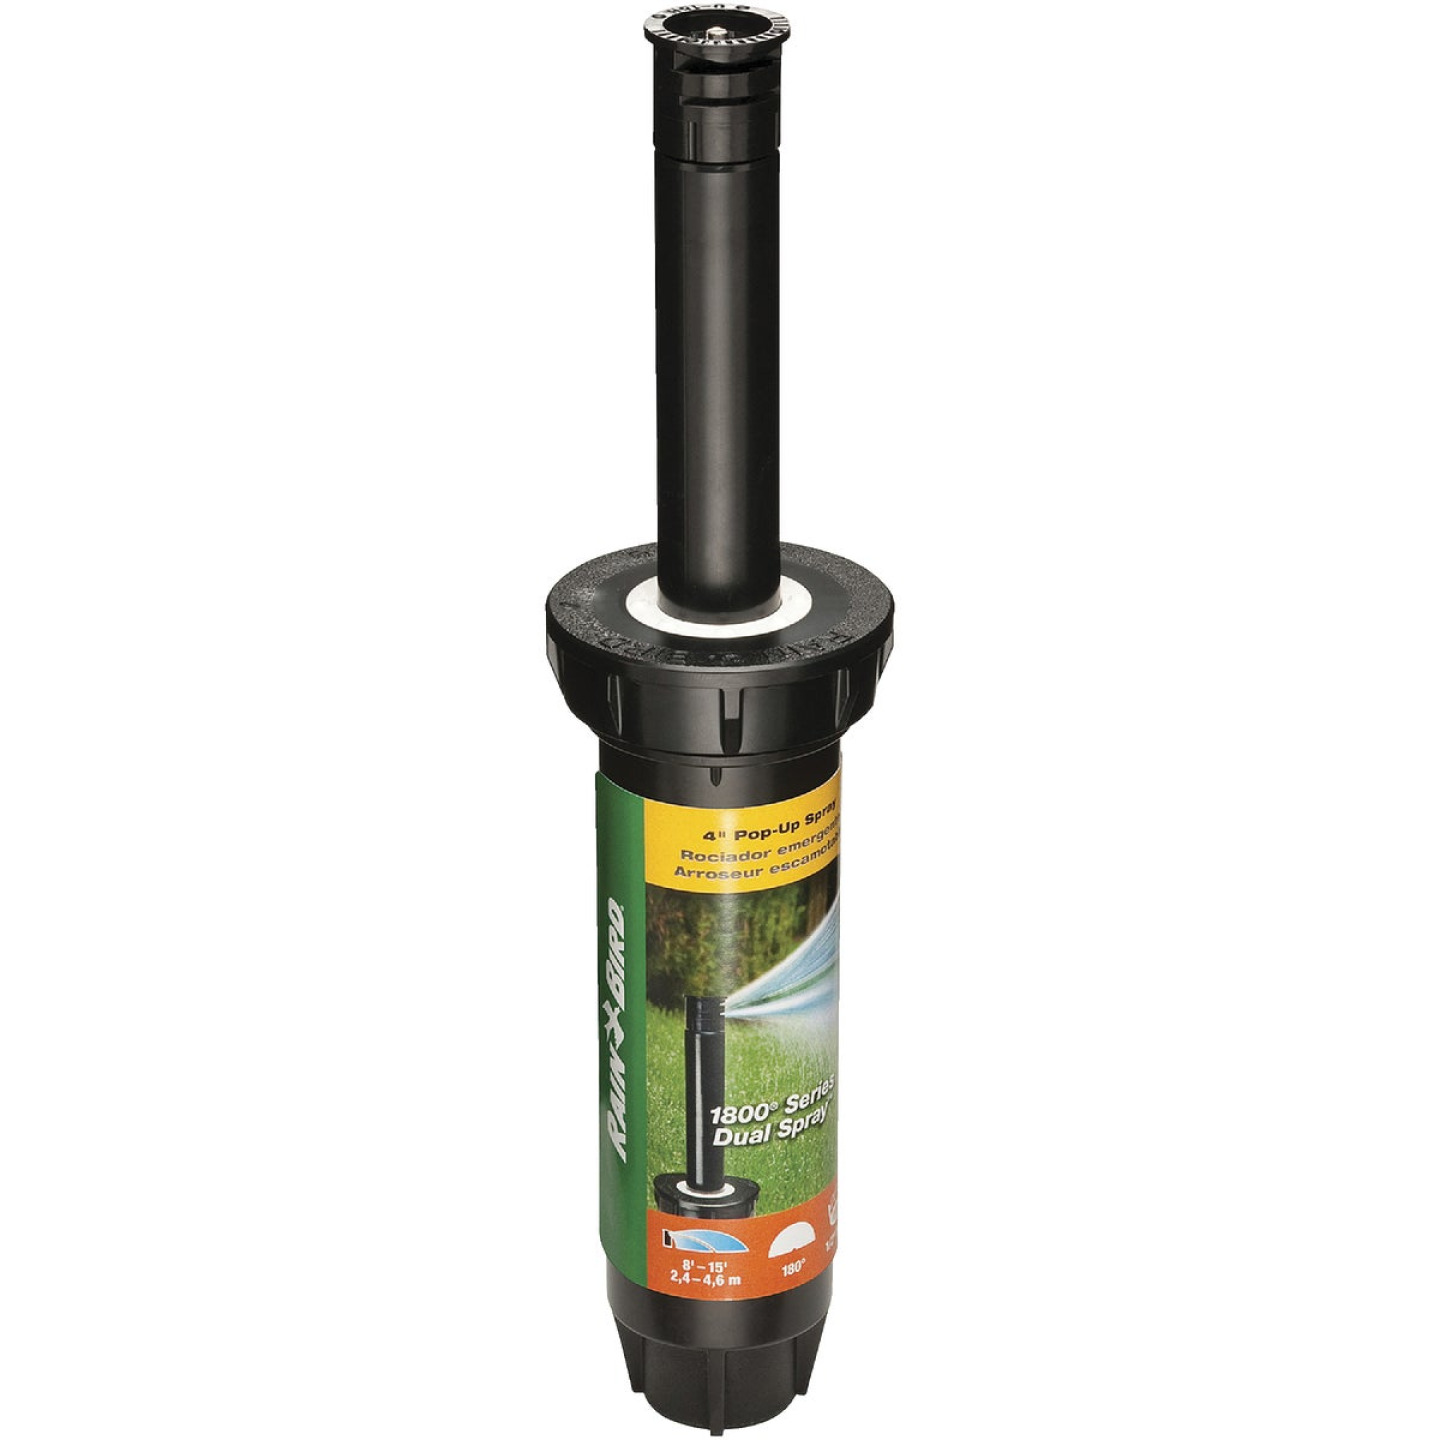 Rain Bird 4 In. Half Circle Dual Spray Pop-Up Head with Pressure Regulator Image 1